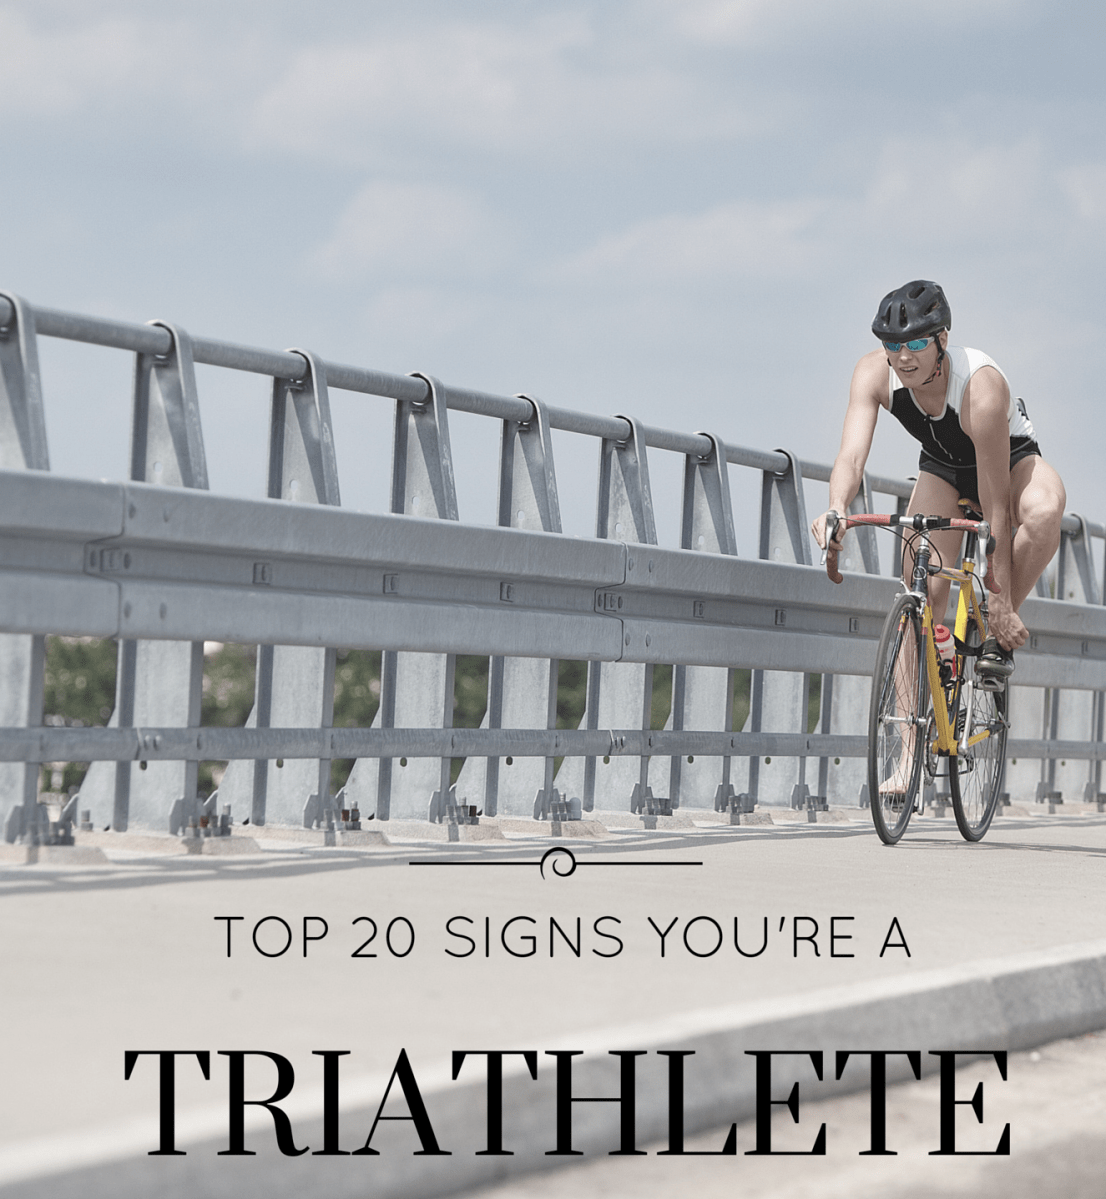 Top 20 Signs That You're a Triathlete